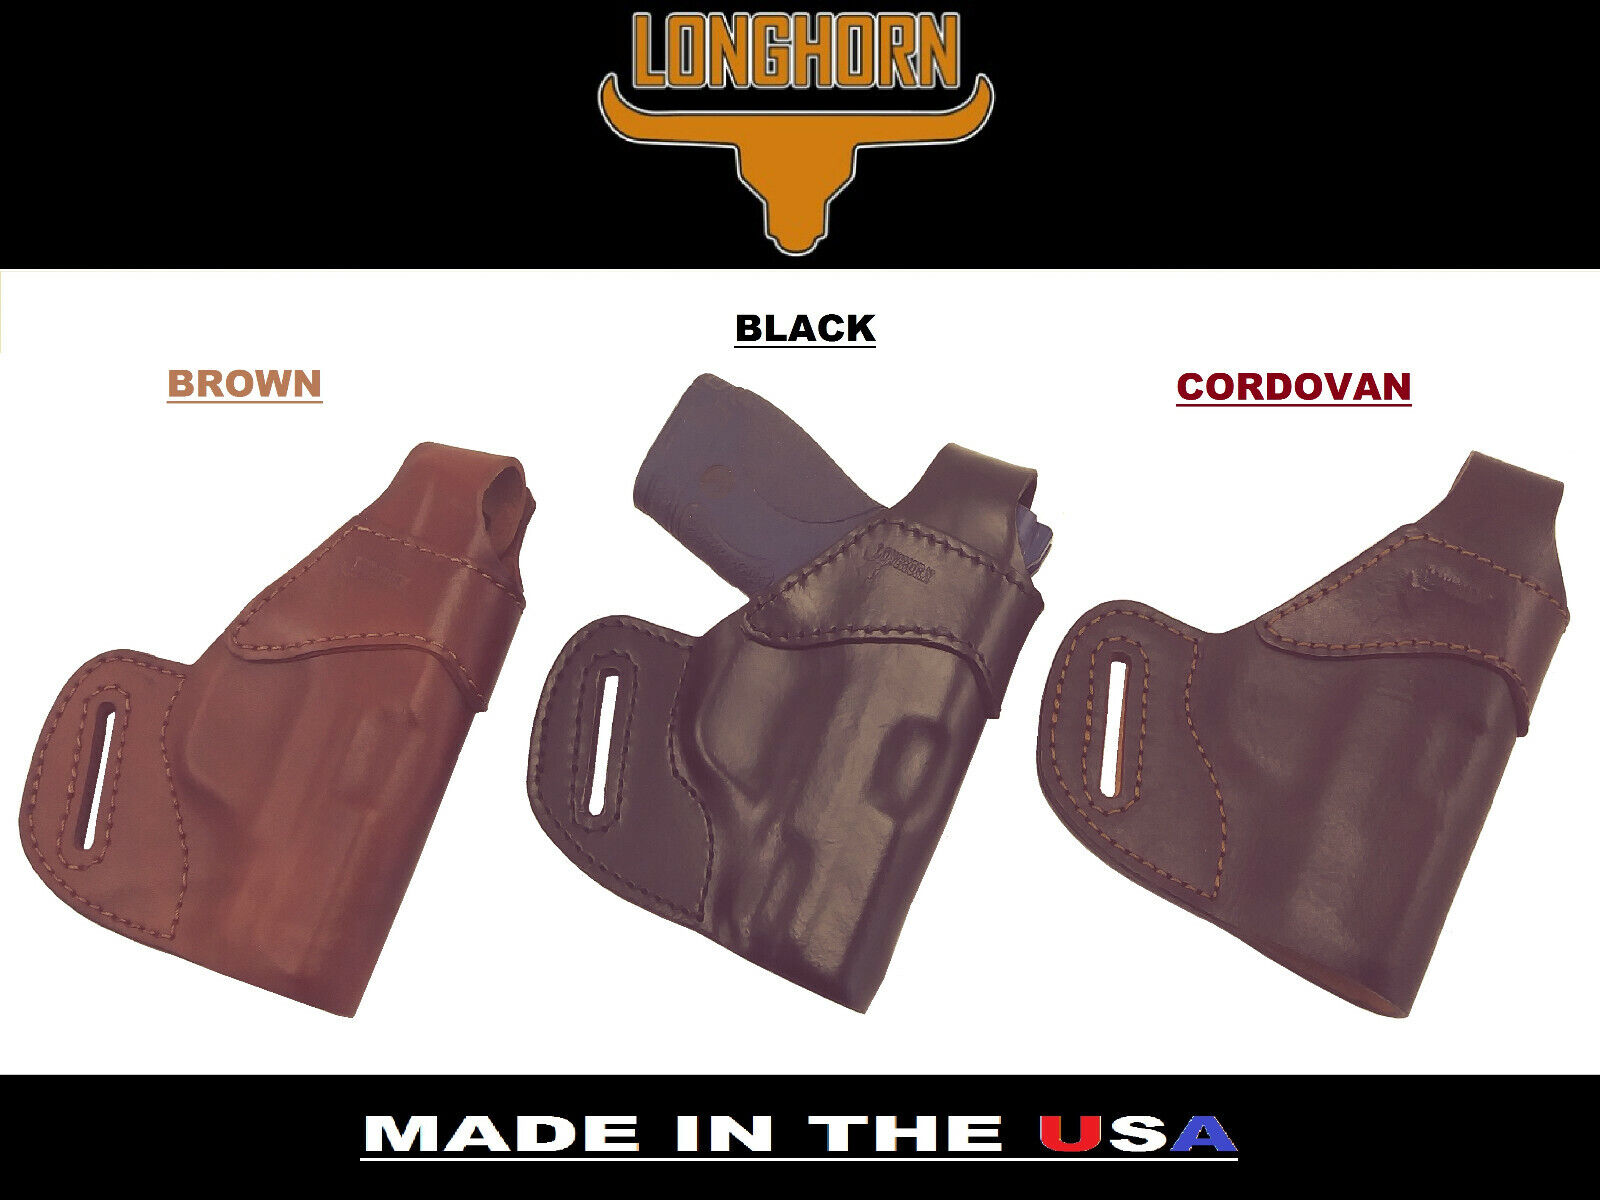 LONGHORN PREMIUM LEATHER TAURUS SPECTRUM OWB BELT CARRY FORMED W  STRAP HOLSTER